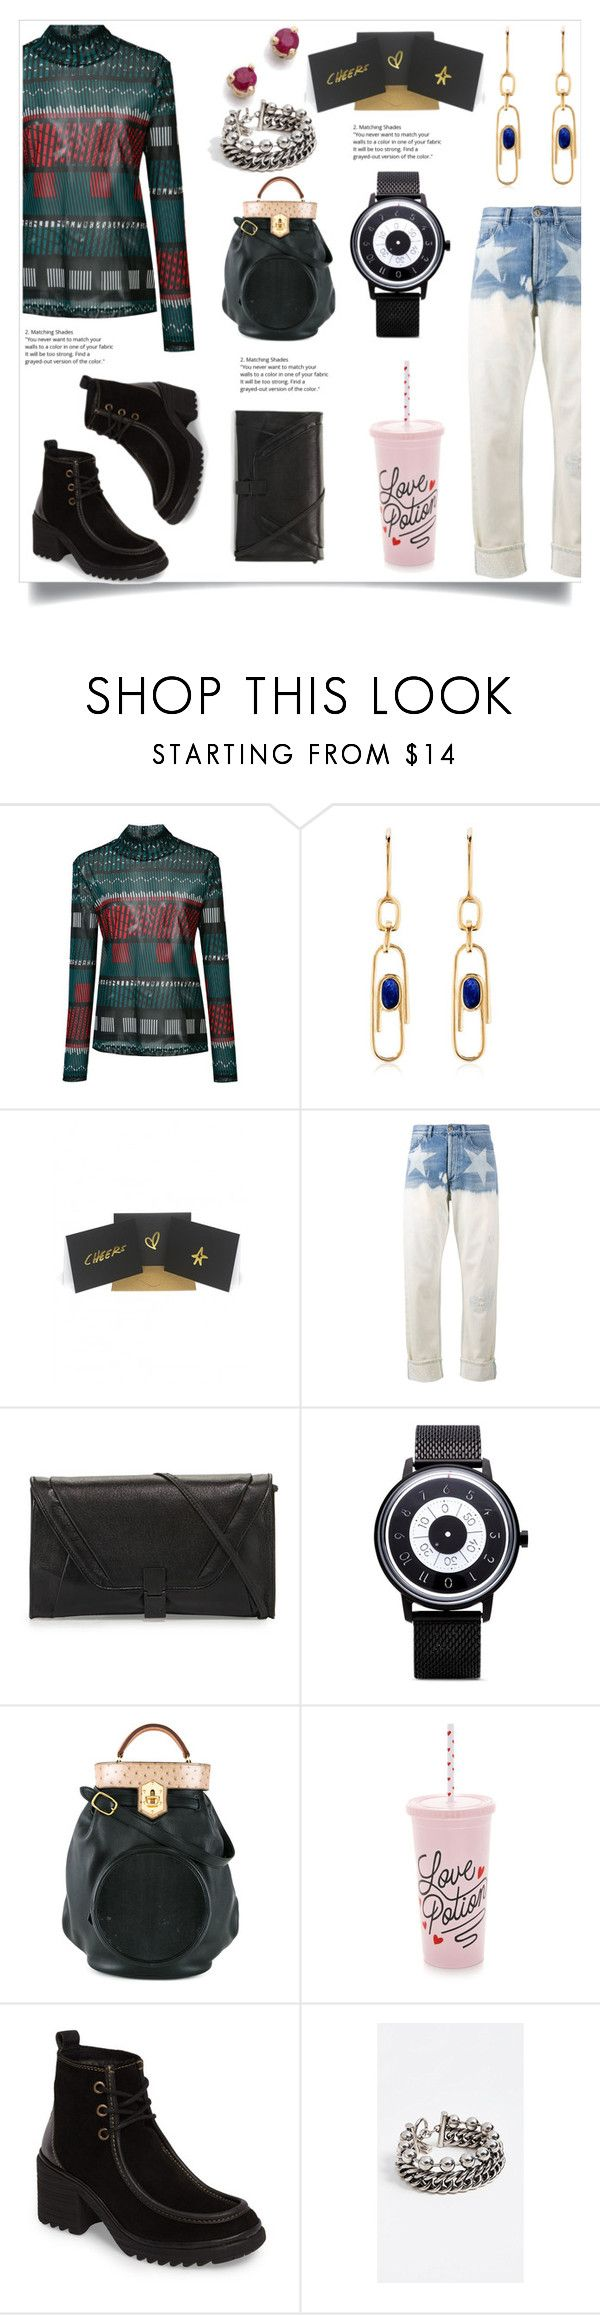 """Tribal Top"" by camry-brynn ❤ liked on Polyvore featuring Issey Miyake, Aurélie Bidermann, Terrapin Stationers, Faith Connexion, Anicorn, Hermès, ban.do, Fly LONDON, Alexander Wang and Blanca"